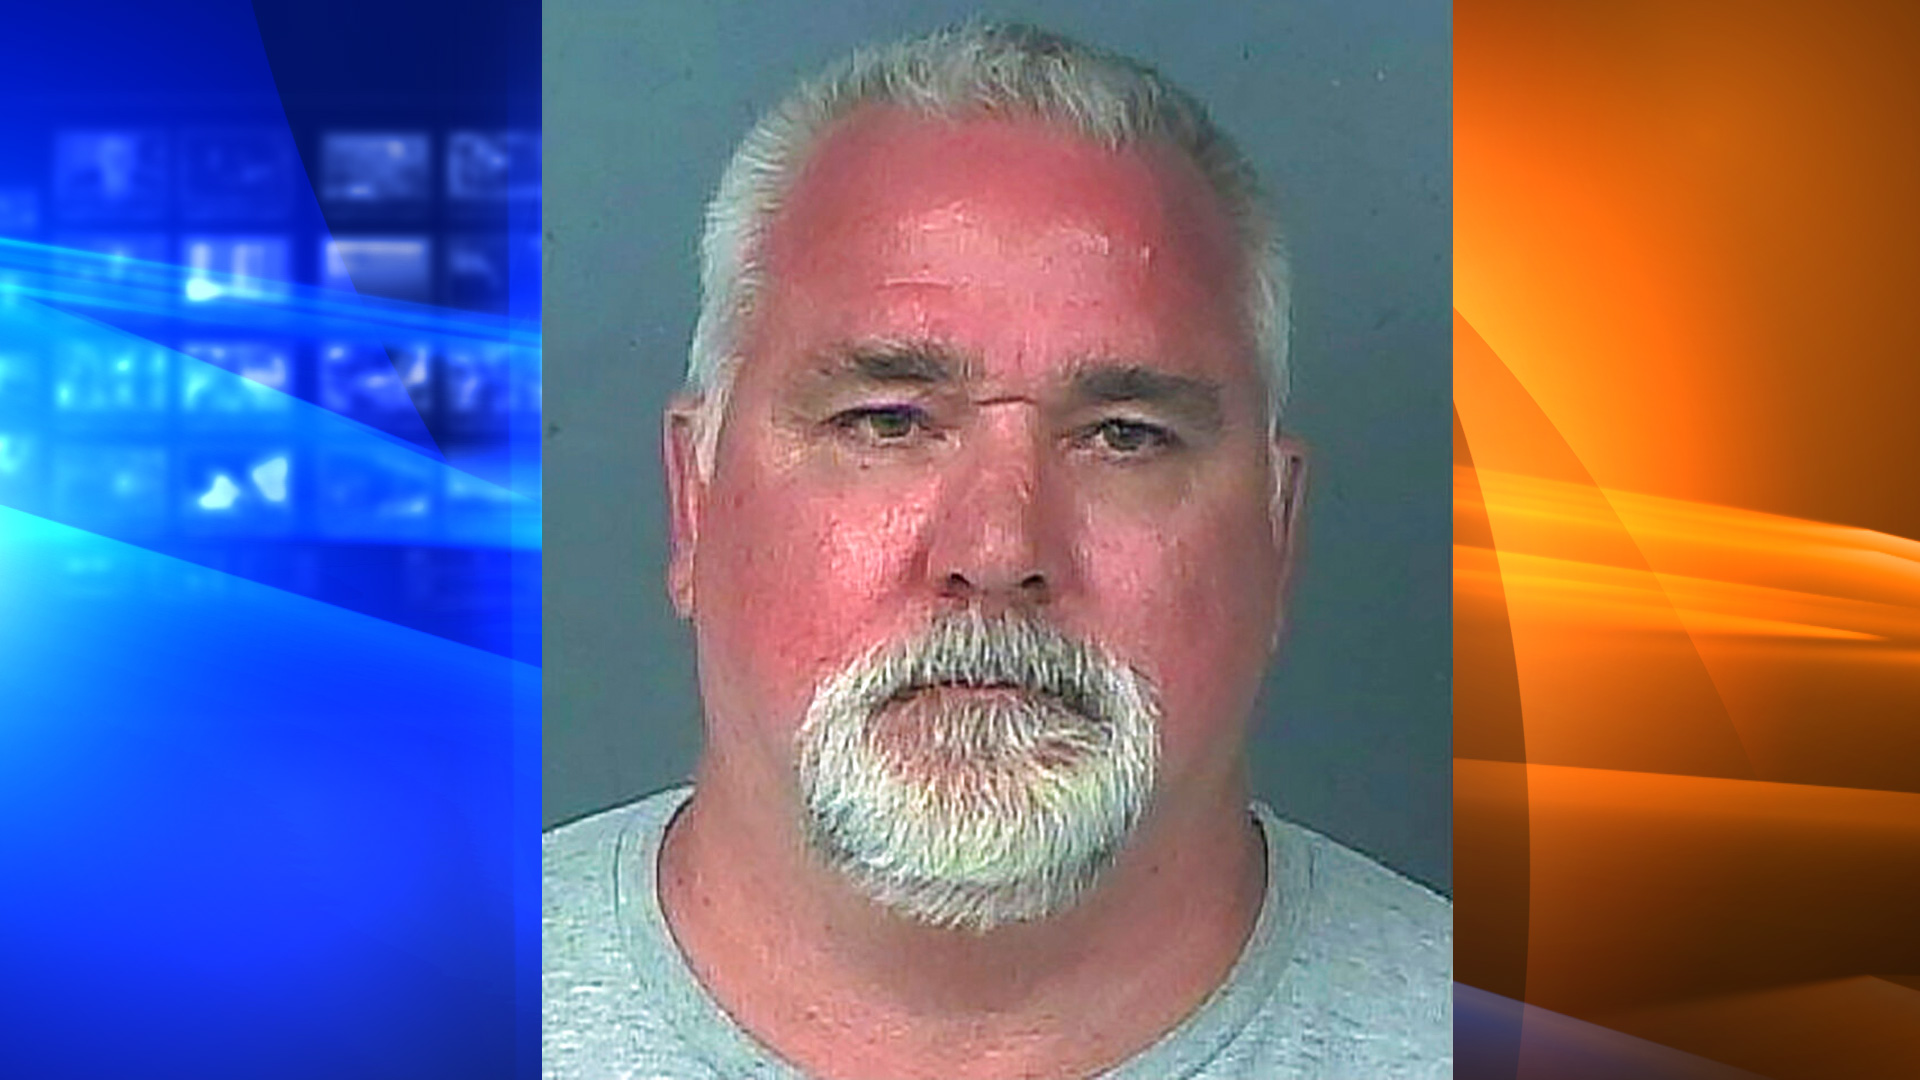 This Tuesday, May 25, 2021 booking photo provided by the Hernando County (Florida) Sheriff's Office shows David Swenson. Investigators in Florida arrested the 53-year-old sex offender, a fugitive from California who had been living under a false identity for 21 years. (Hernando County Sheriff's Office via AP)